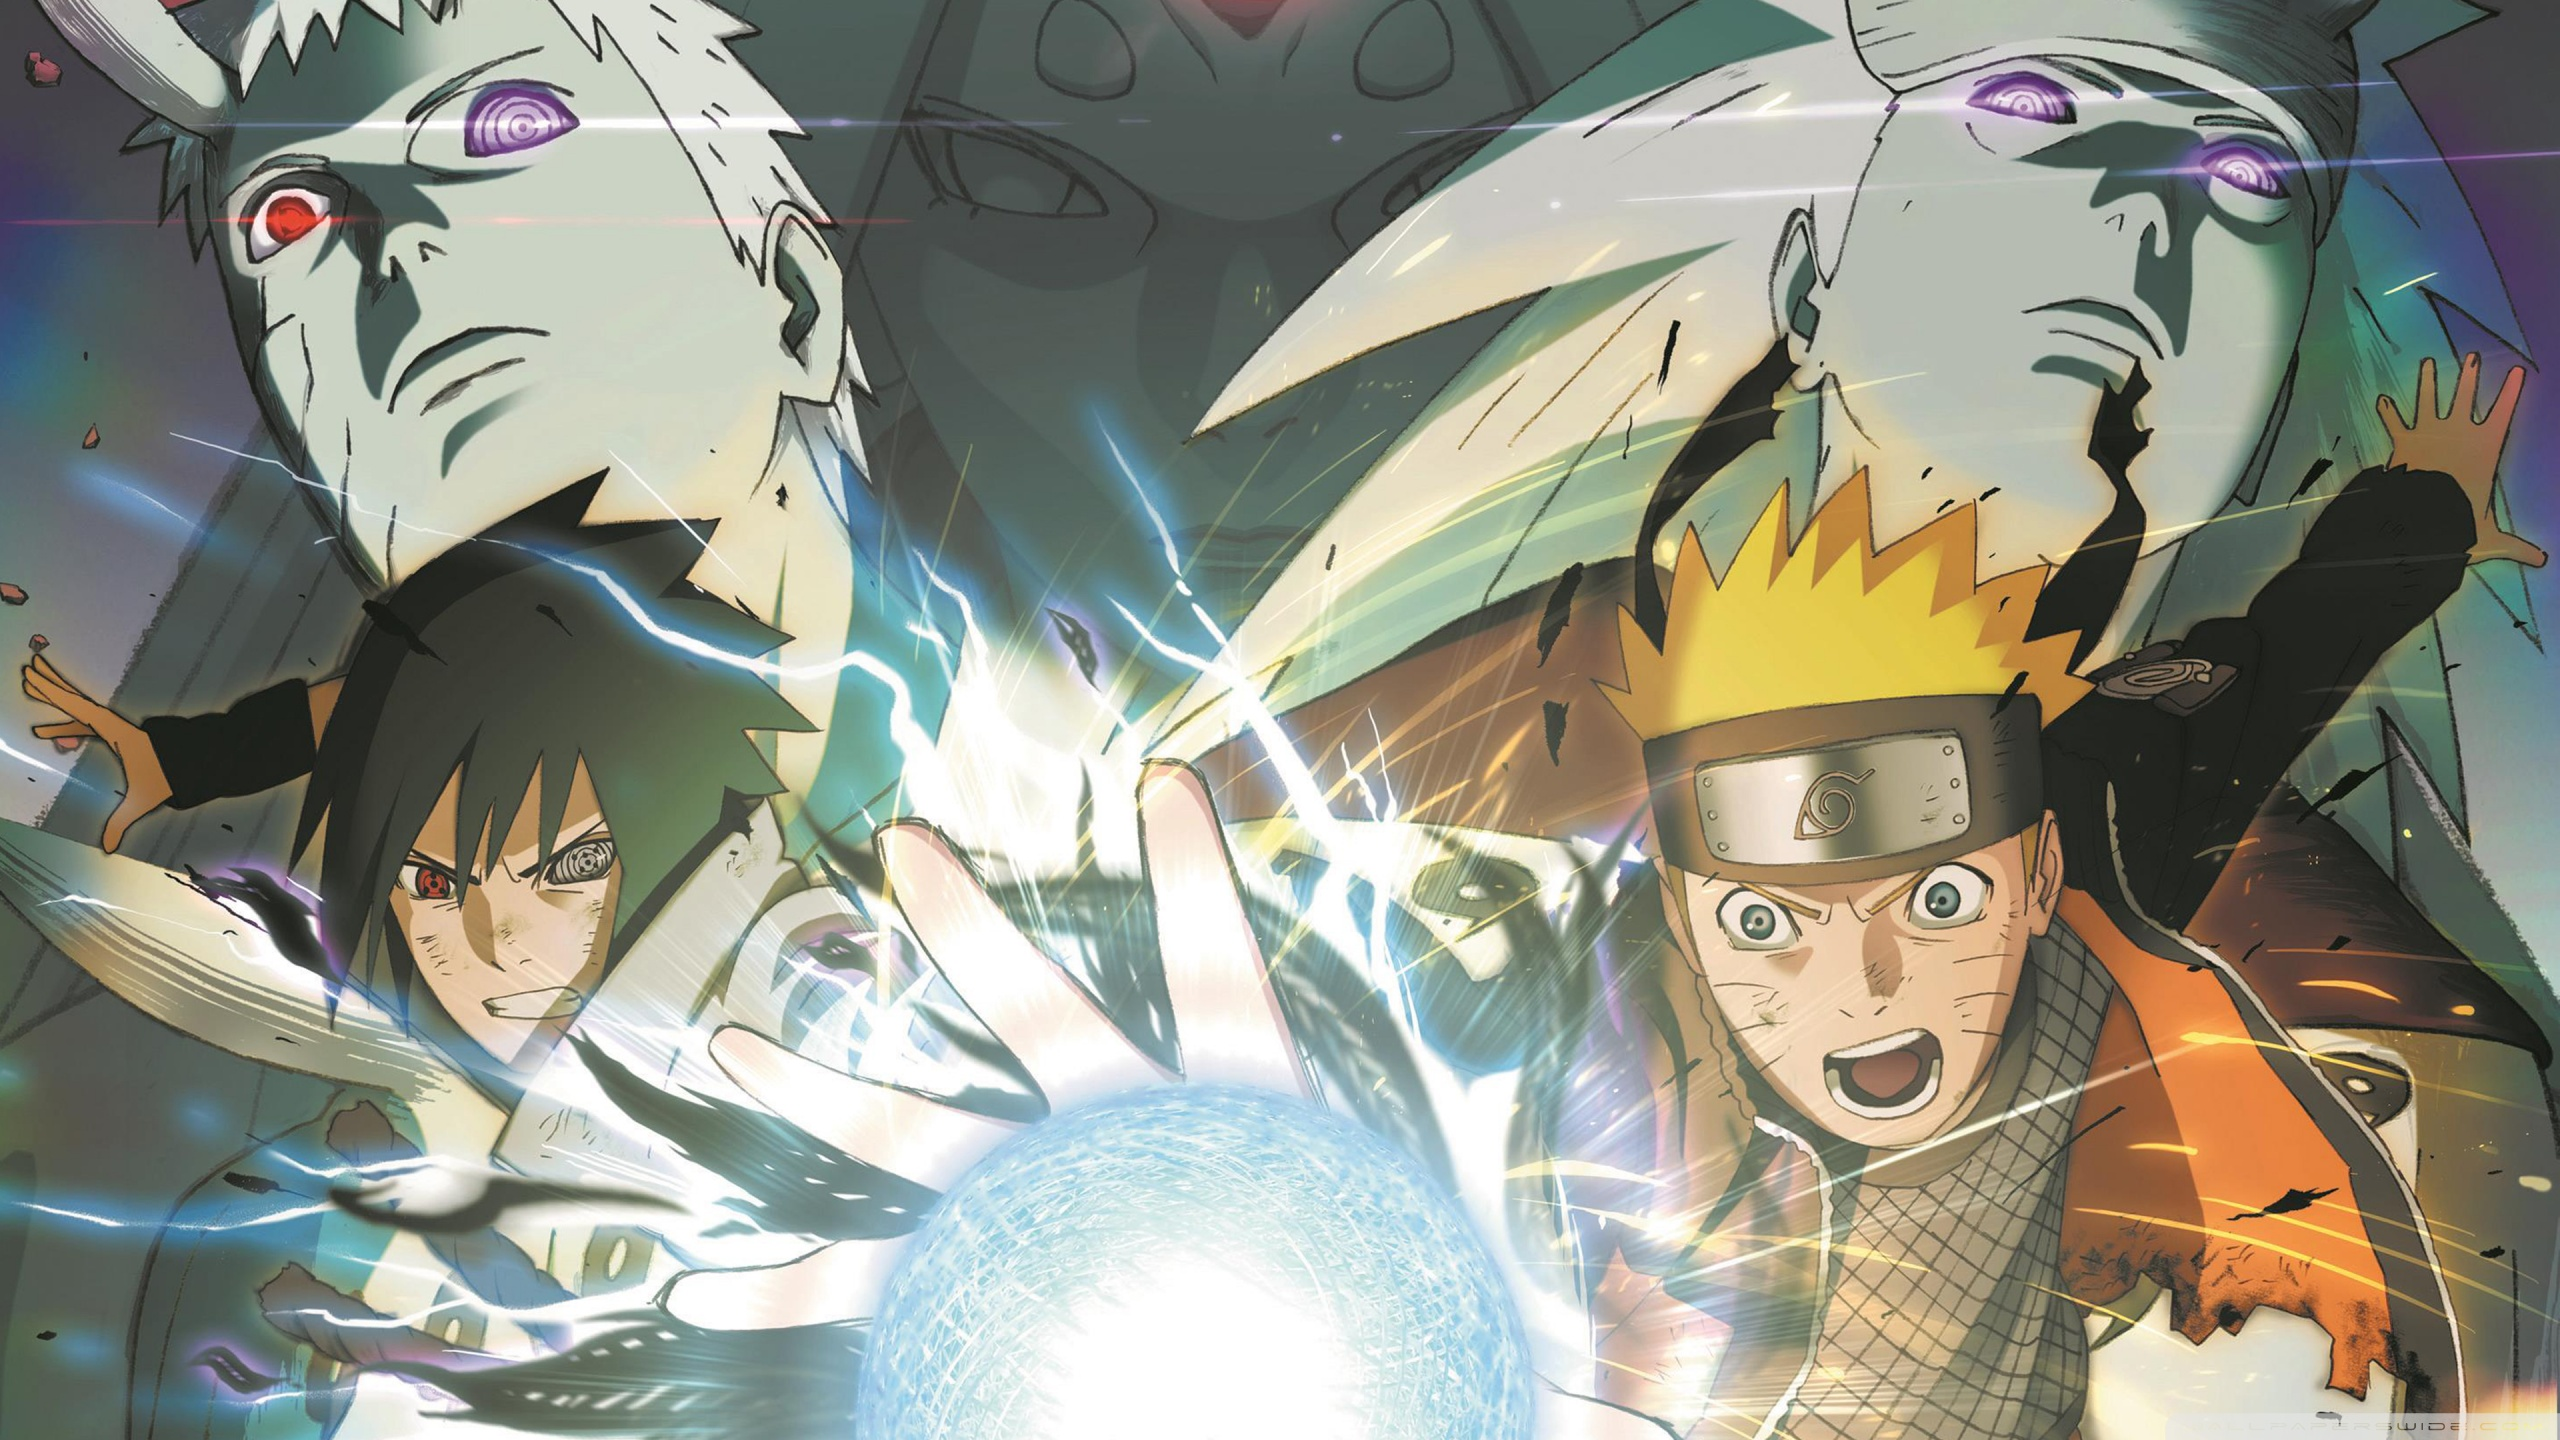 (you can find it using this number). Naruto Storm 4 - 2016 Ultra HD Desktop Background